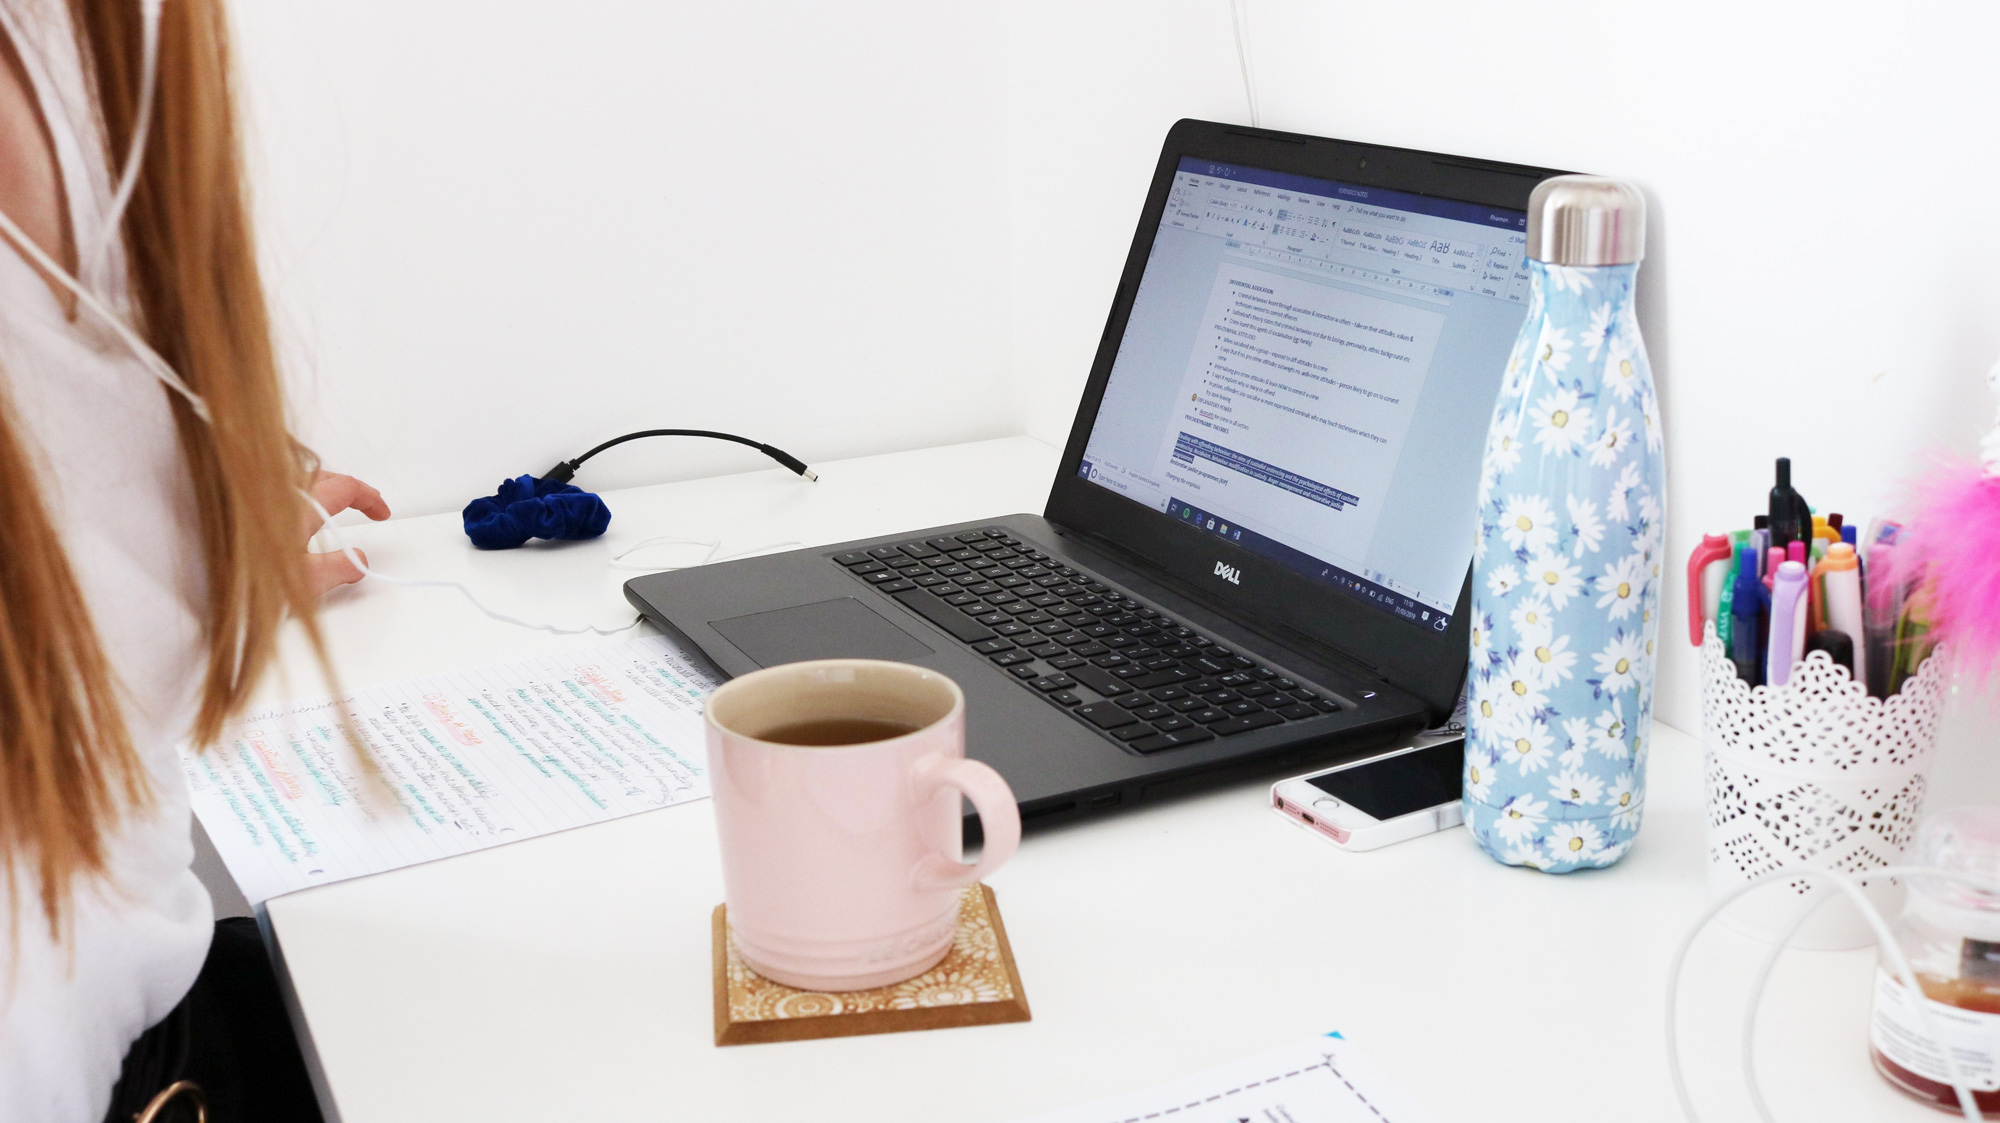 Here's a peek at Rhiannon's desk setup…showing how good desk is never short of a cup of tea!!!